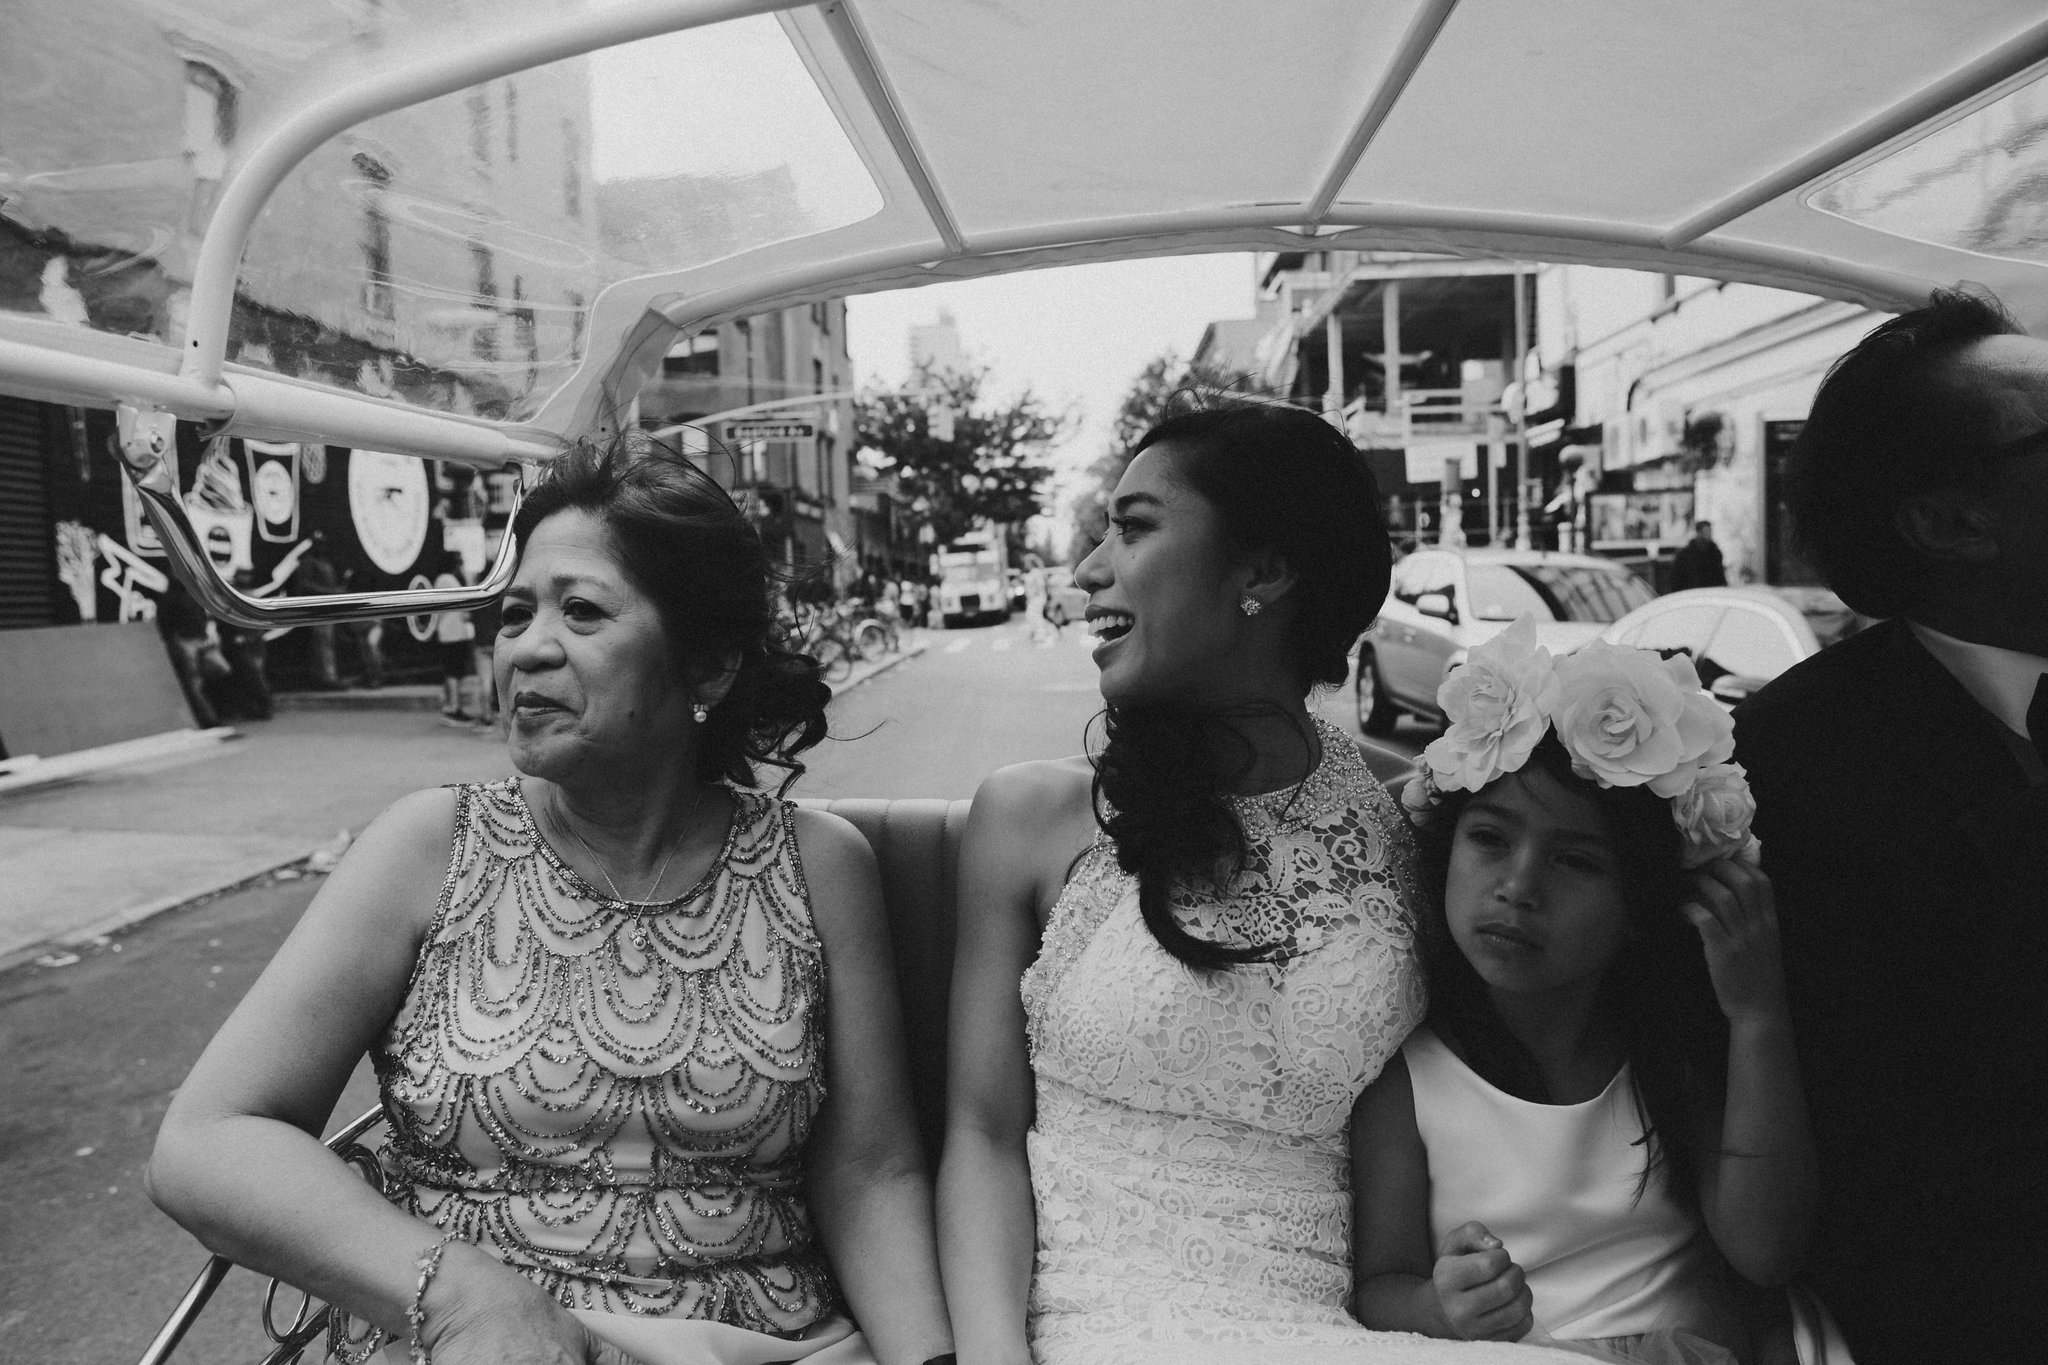 Brooklyn_Winery_Wedding_Chellise_Michael_Photography0224.JPG